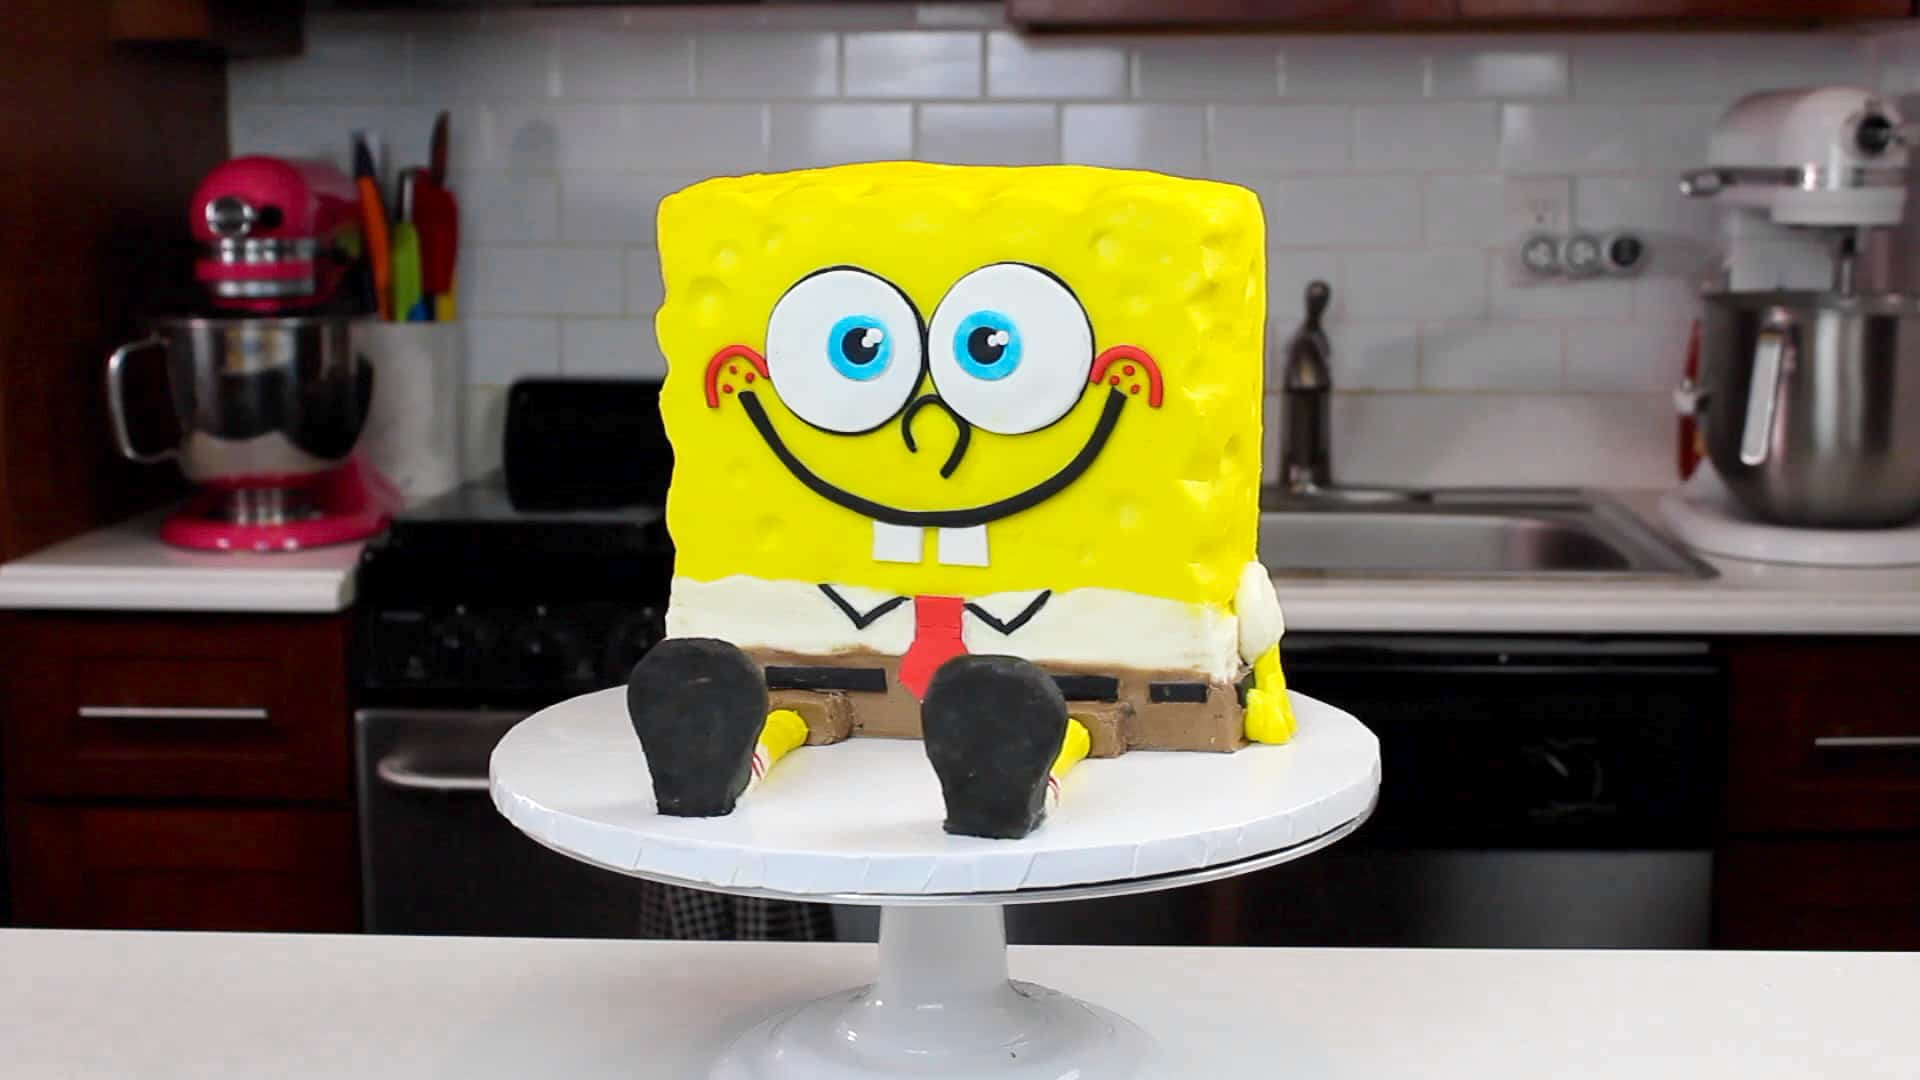 image of spongebob cake